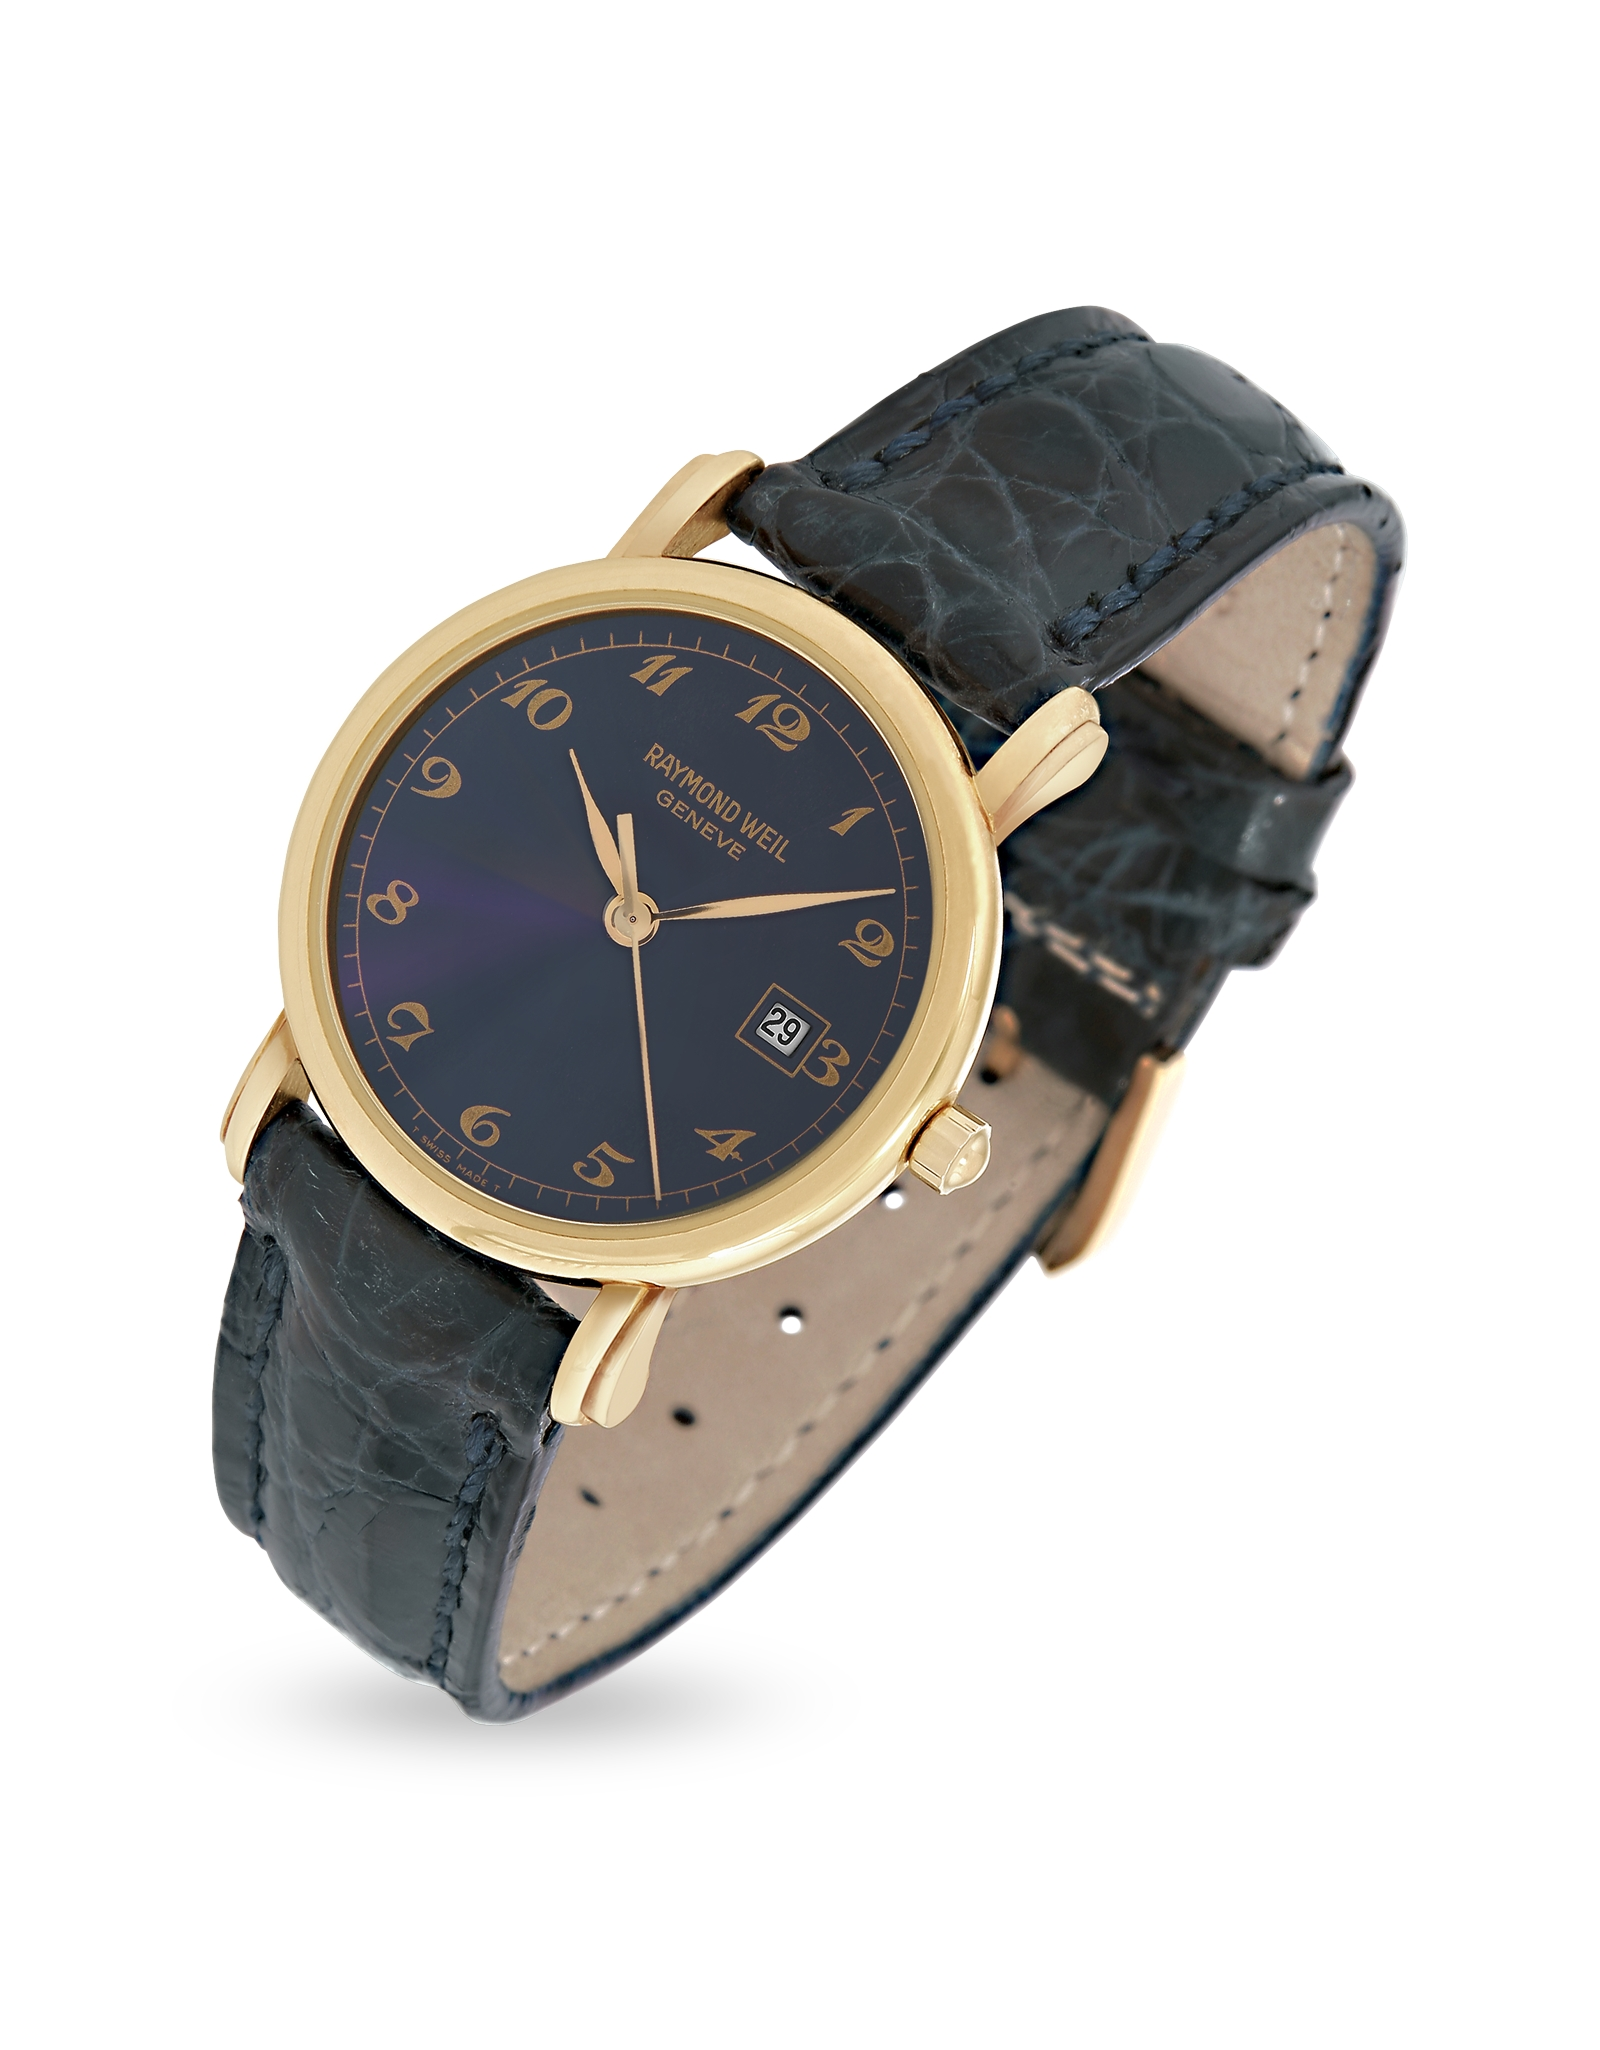 croco weil dress fullscreen product lyst leather raymond watch accessories blue watches view and dial gold